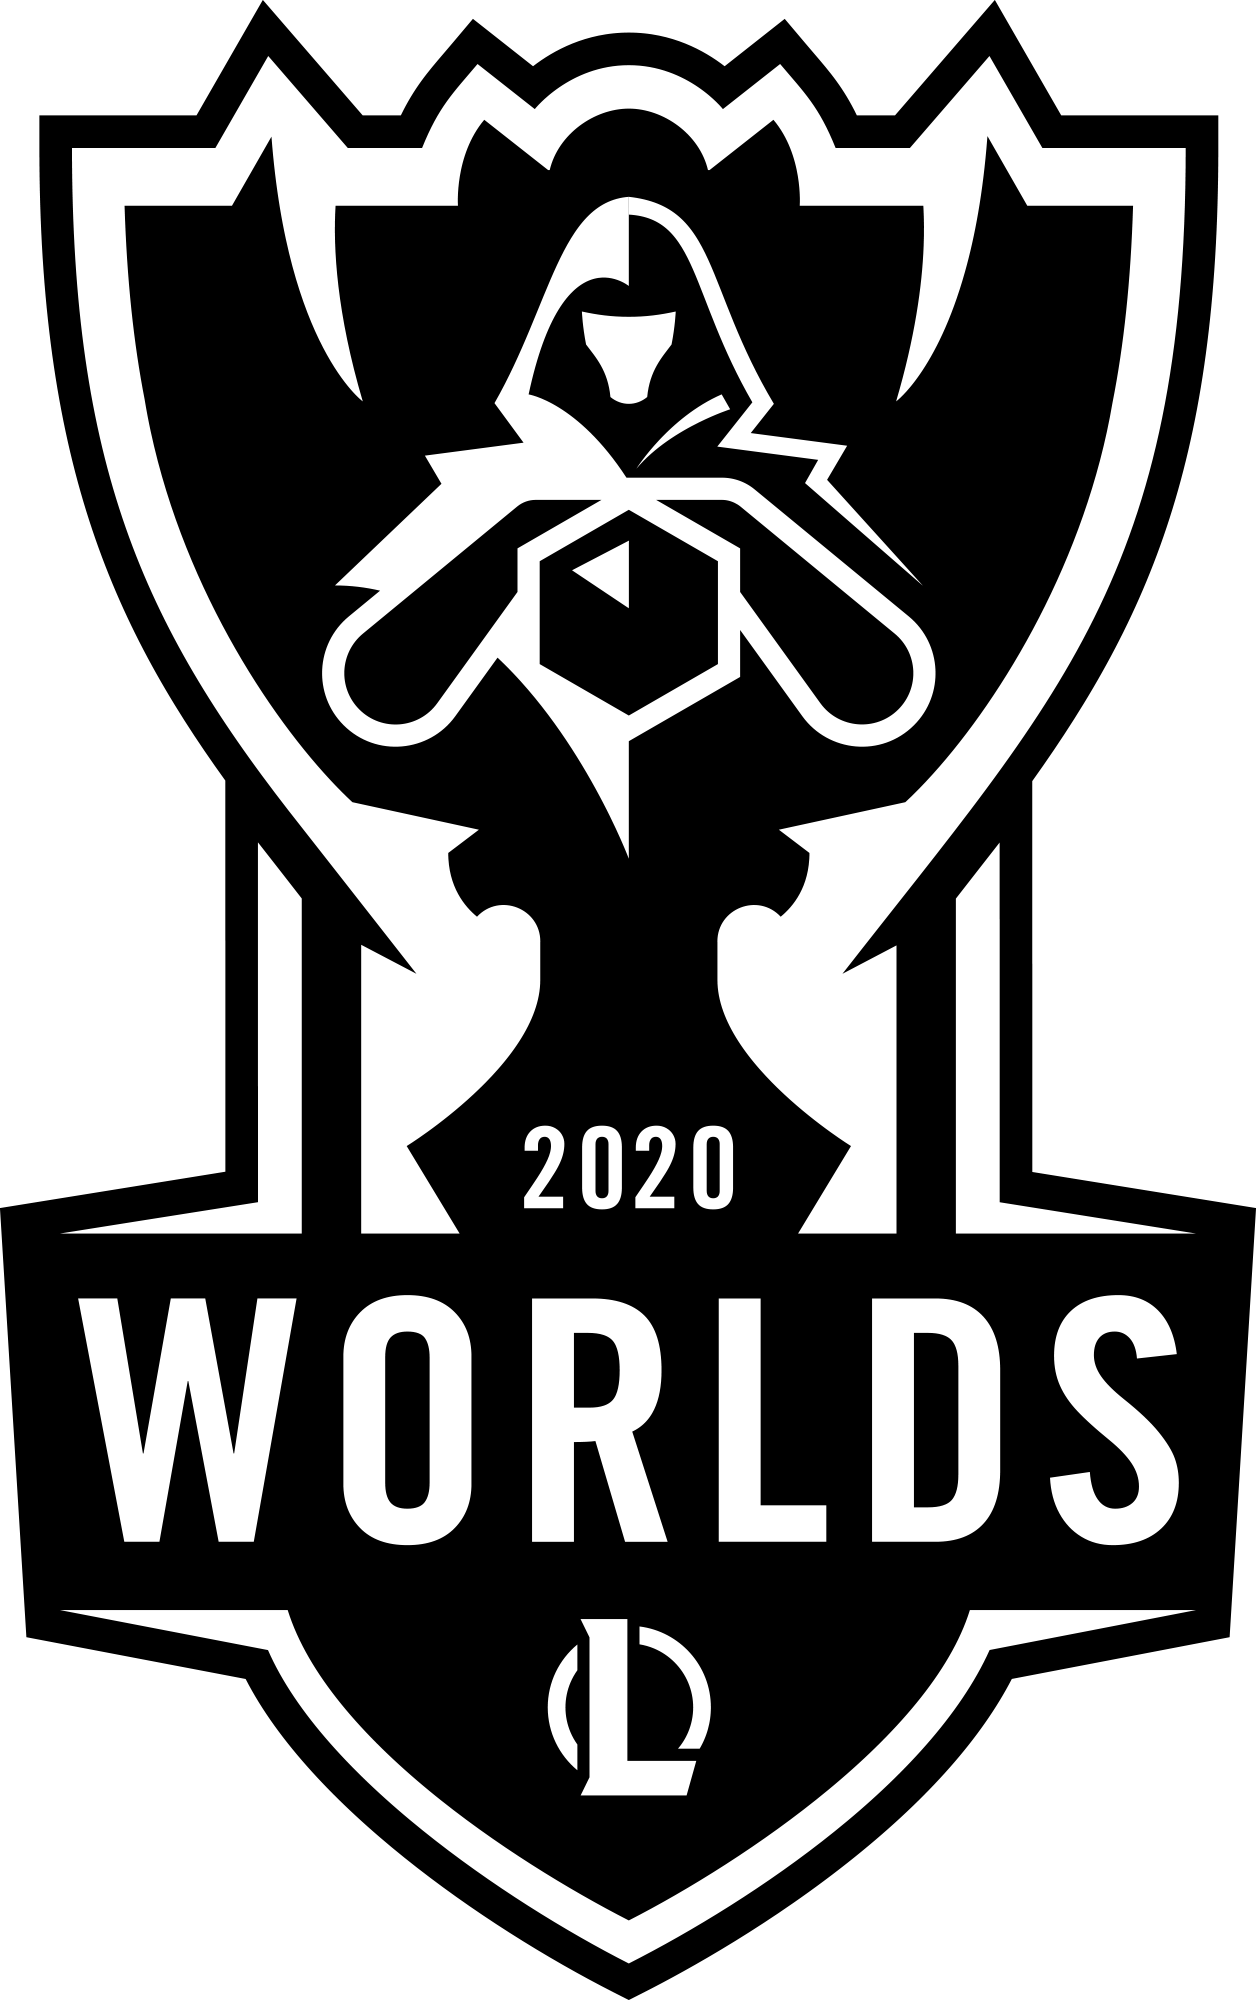 Worlds_2020.png